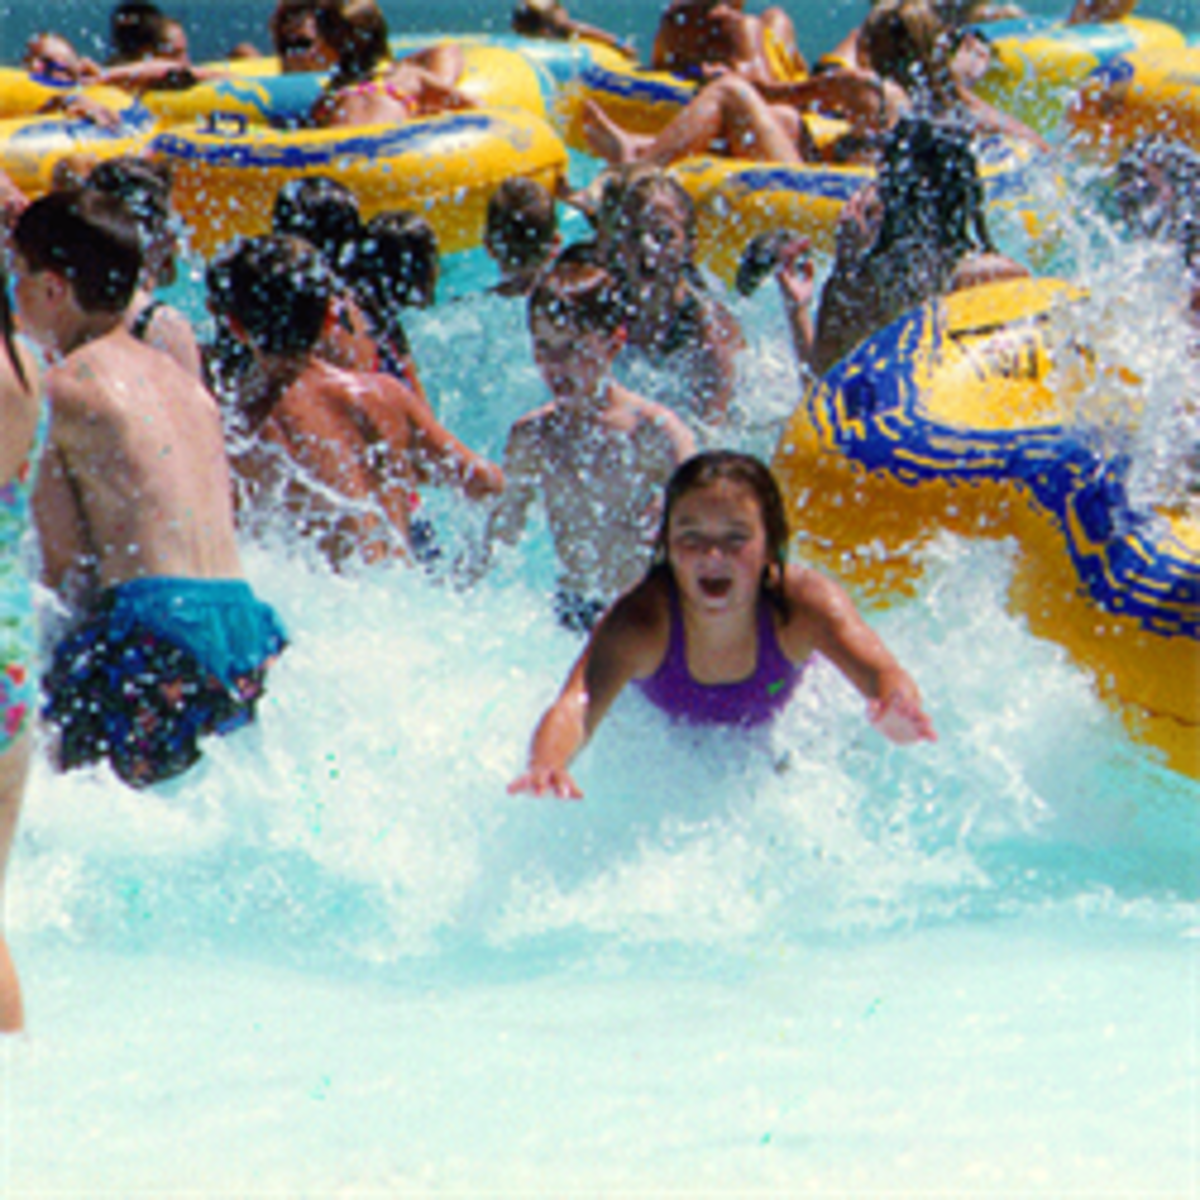 Island oasis outdoor water park in Nebraska